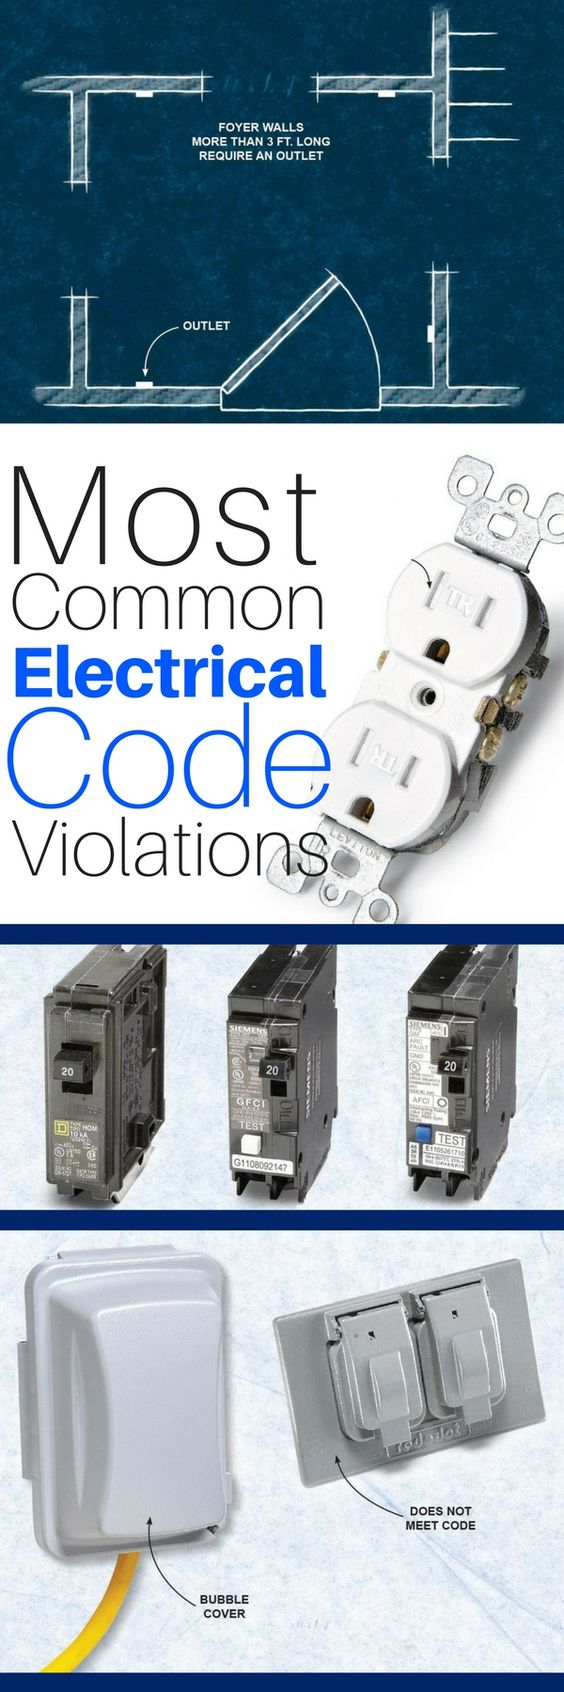 medium resolution of there are many reasons you hire a professional electrician to do the wiring for your house one of those reasons is keeping everything up to code